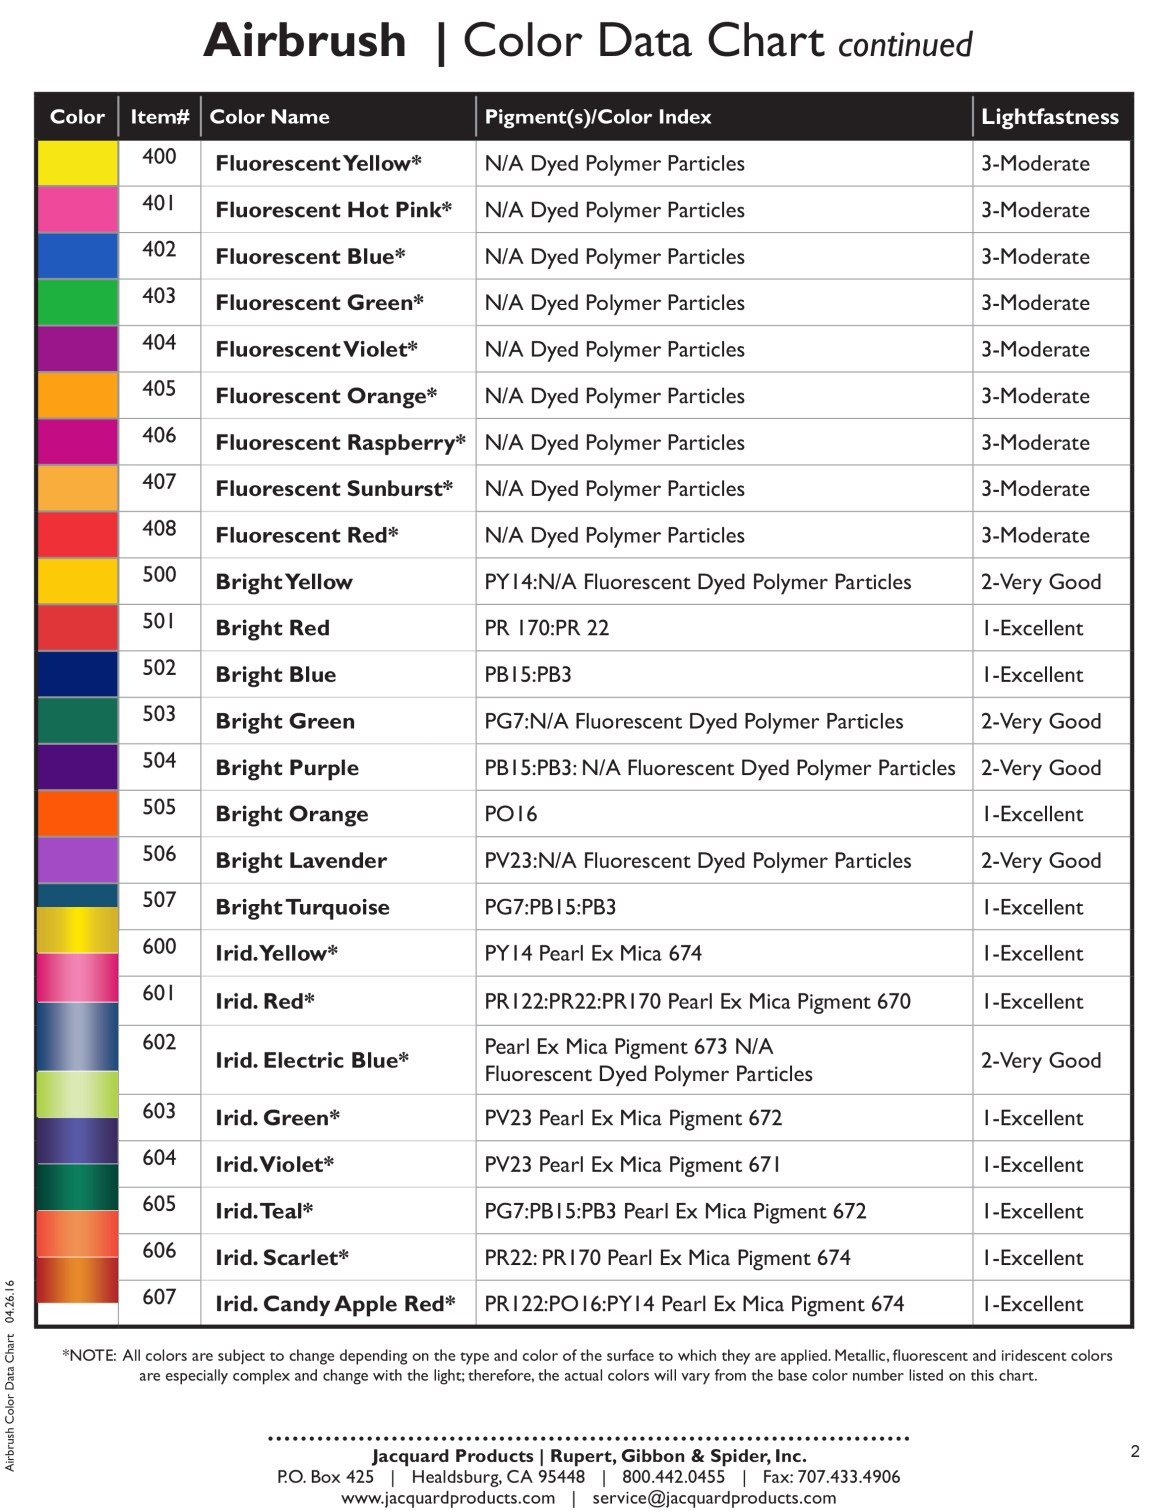 Airbrush-Color-Data-Chart-1-2.jpg